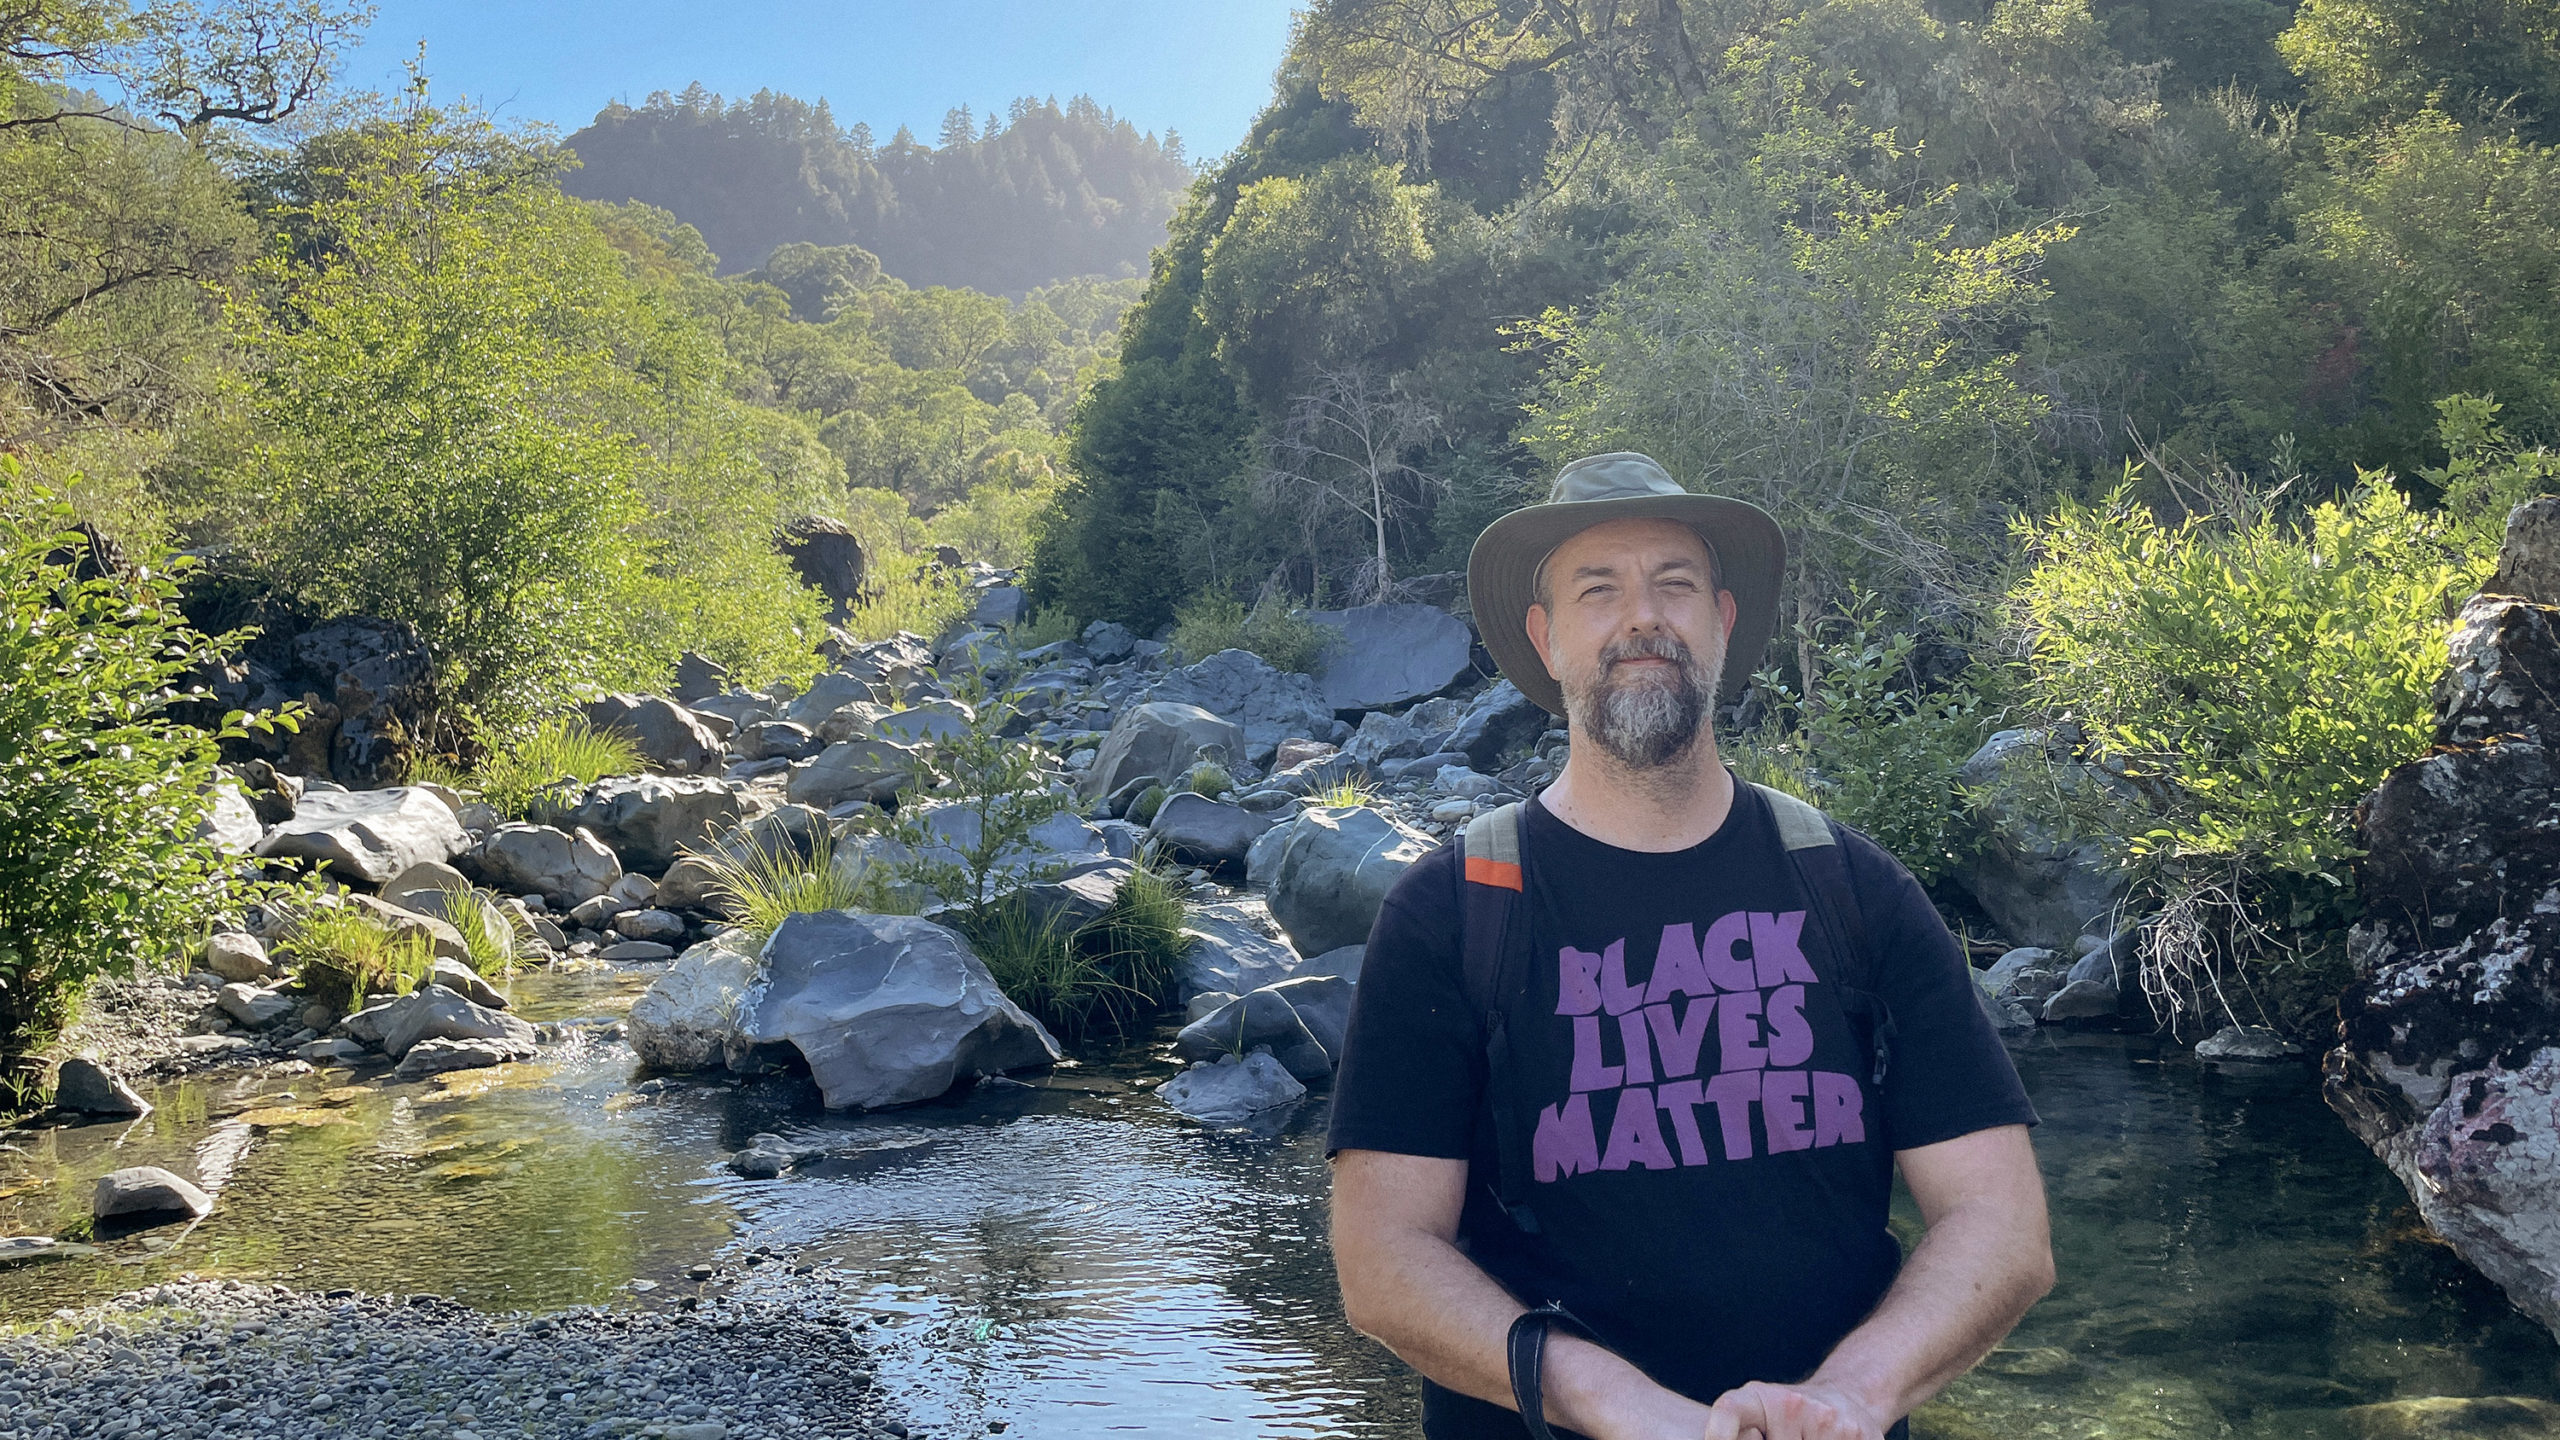 A man in a Black Lives Matter shirt with a hat in a rocky creek bed